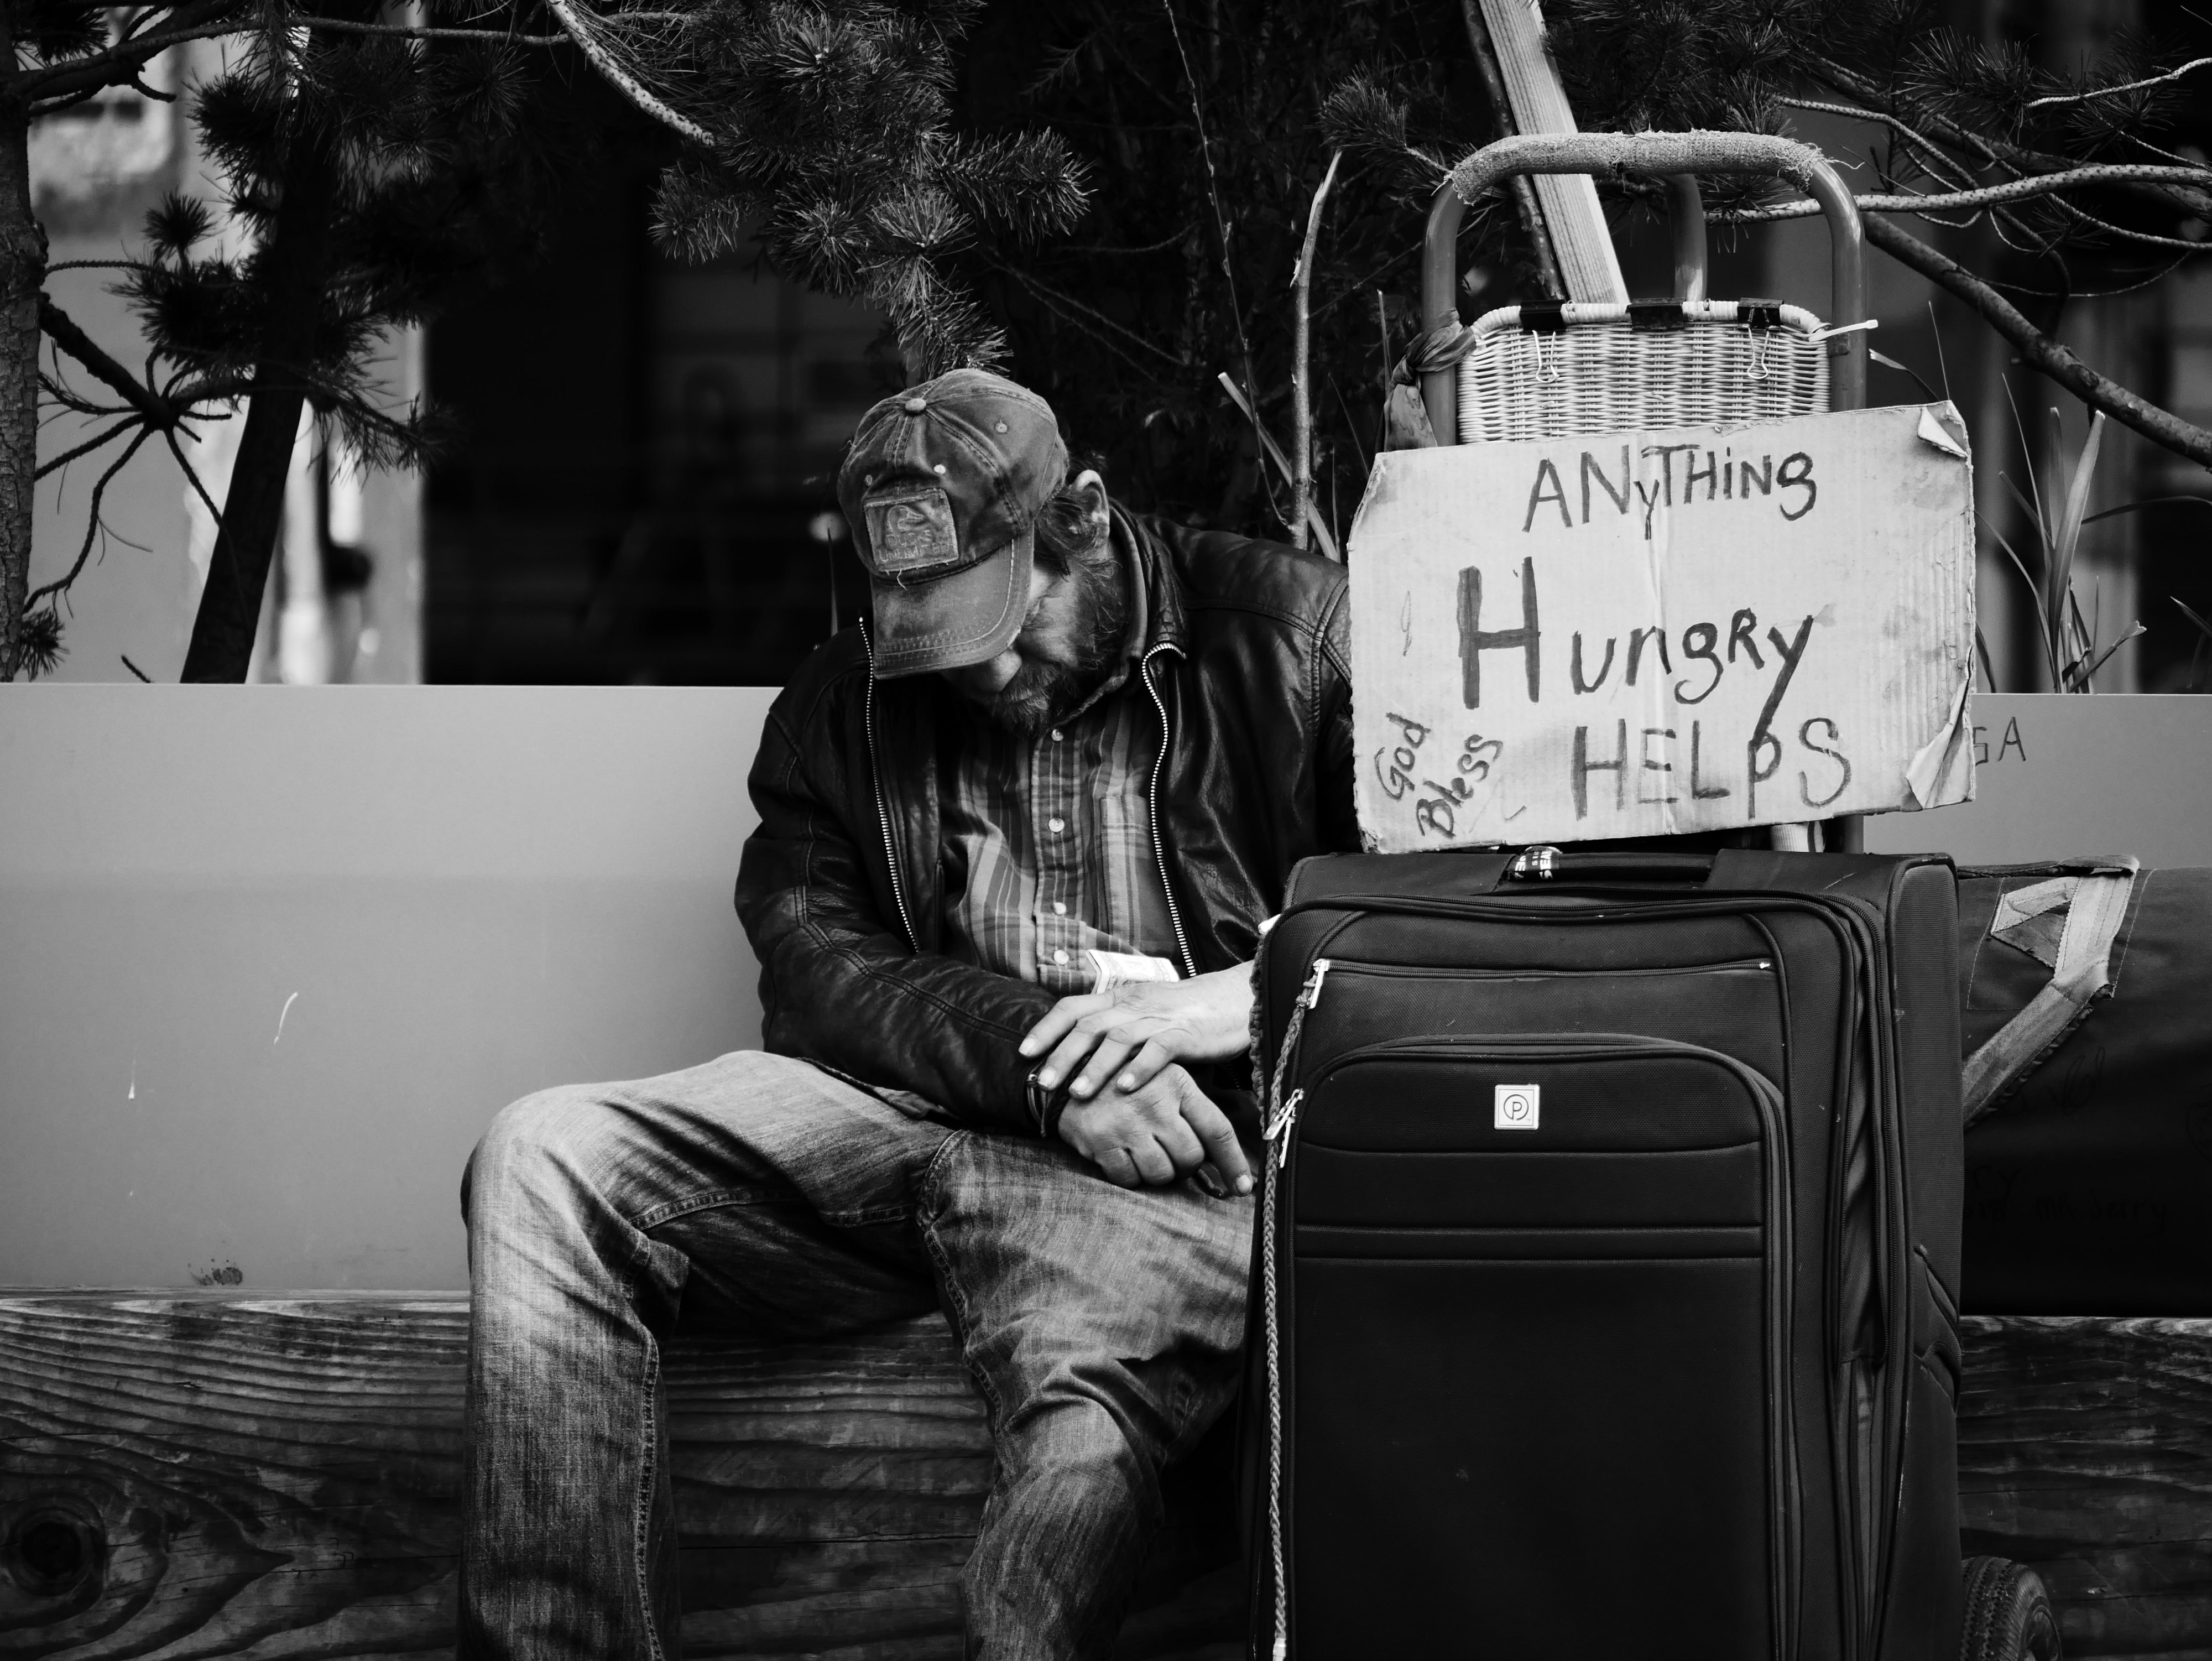 Homeless, poor, hungry man with sign asking for help with food or money.